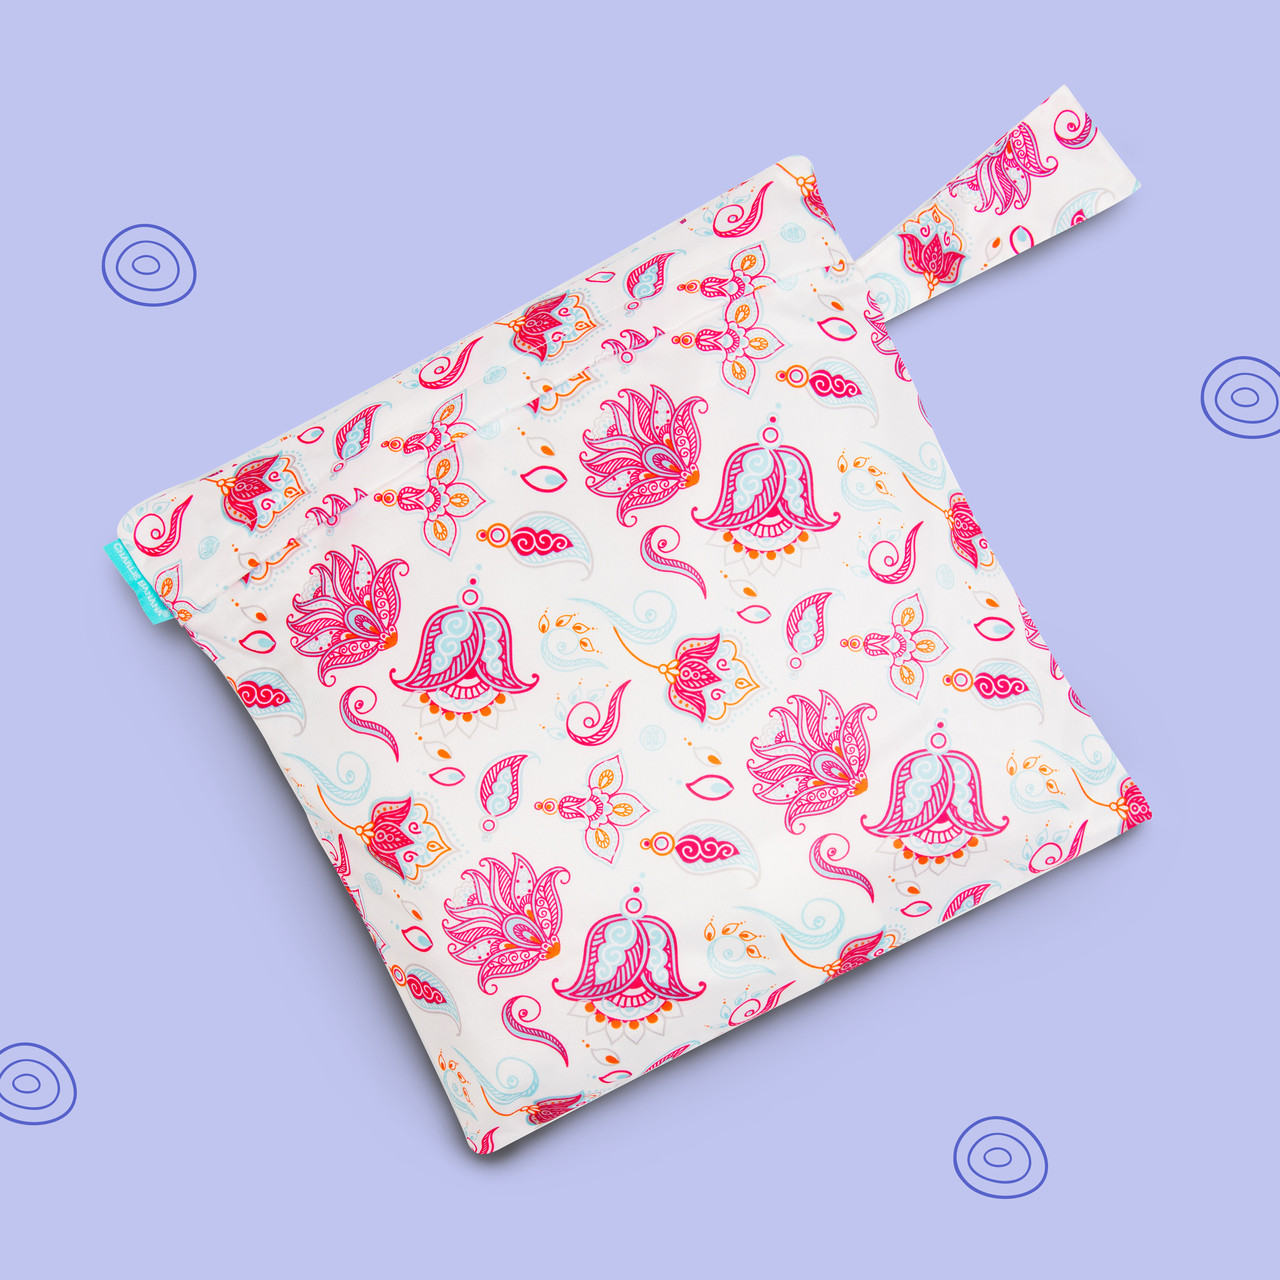 On-the-go Tote Bag   Cotton Bliss